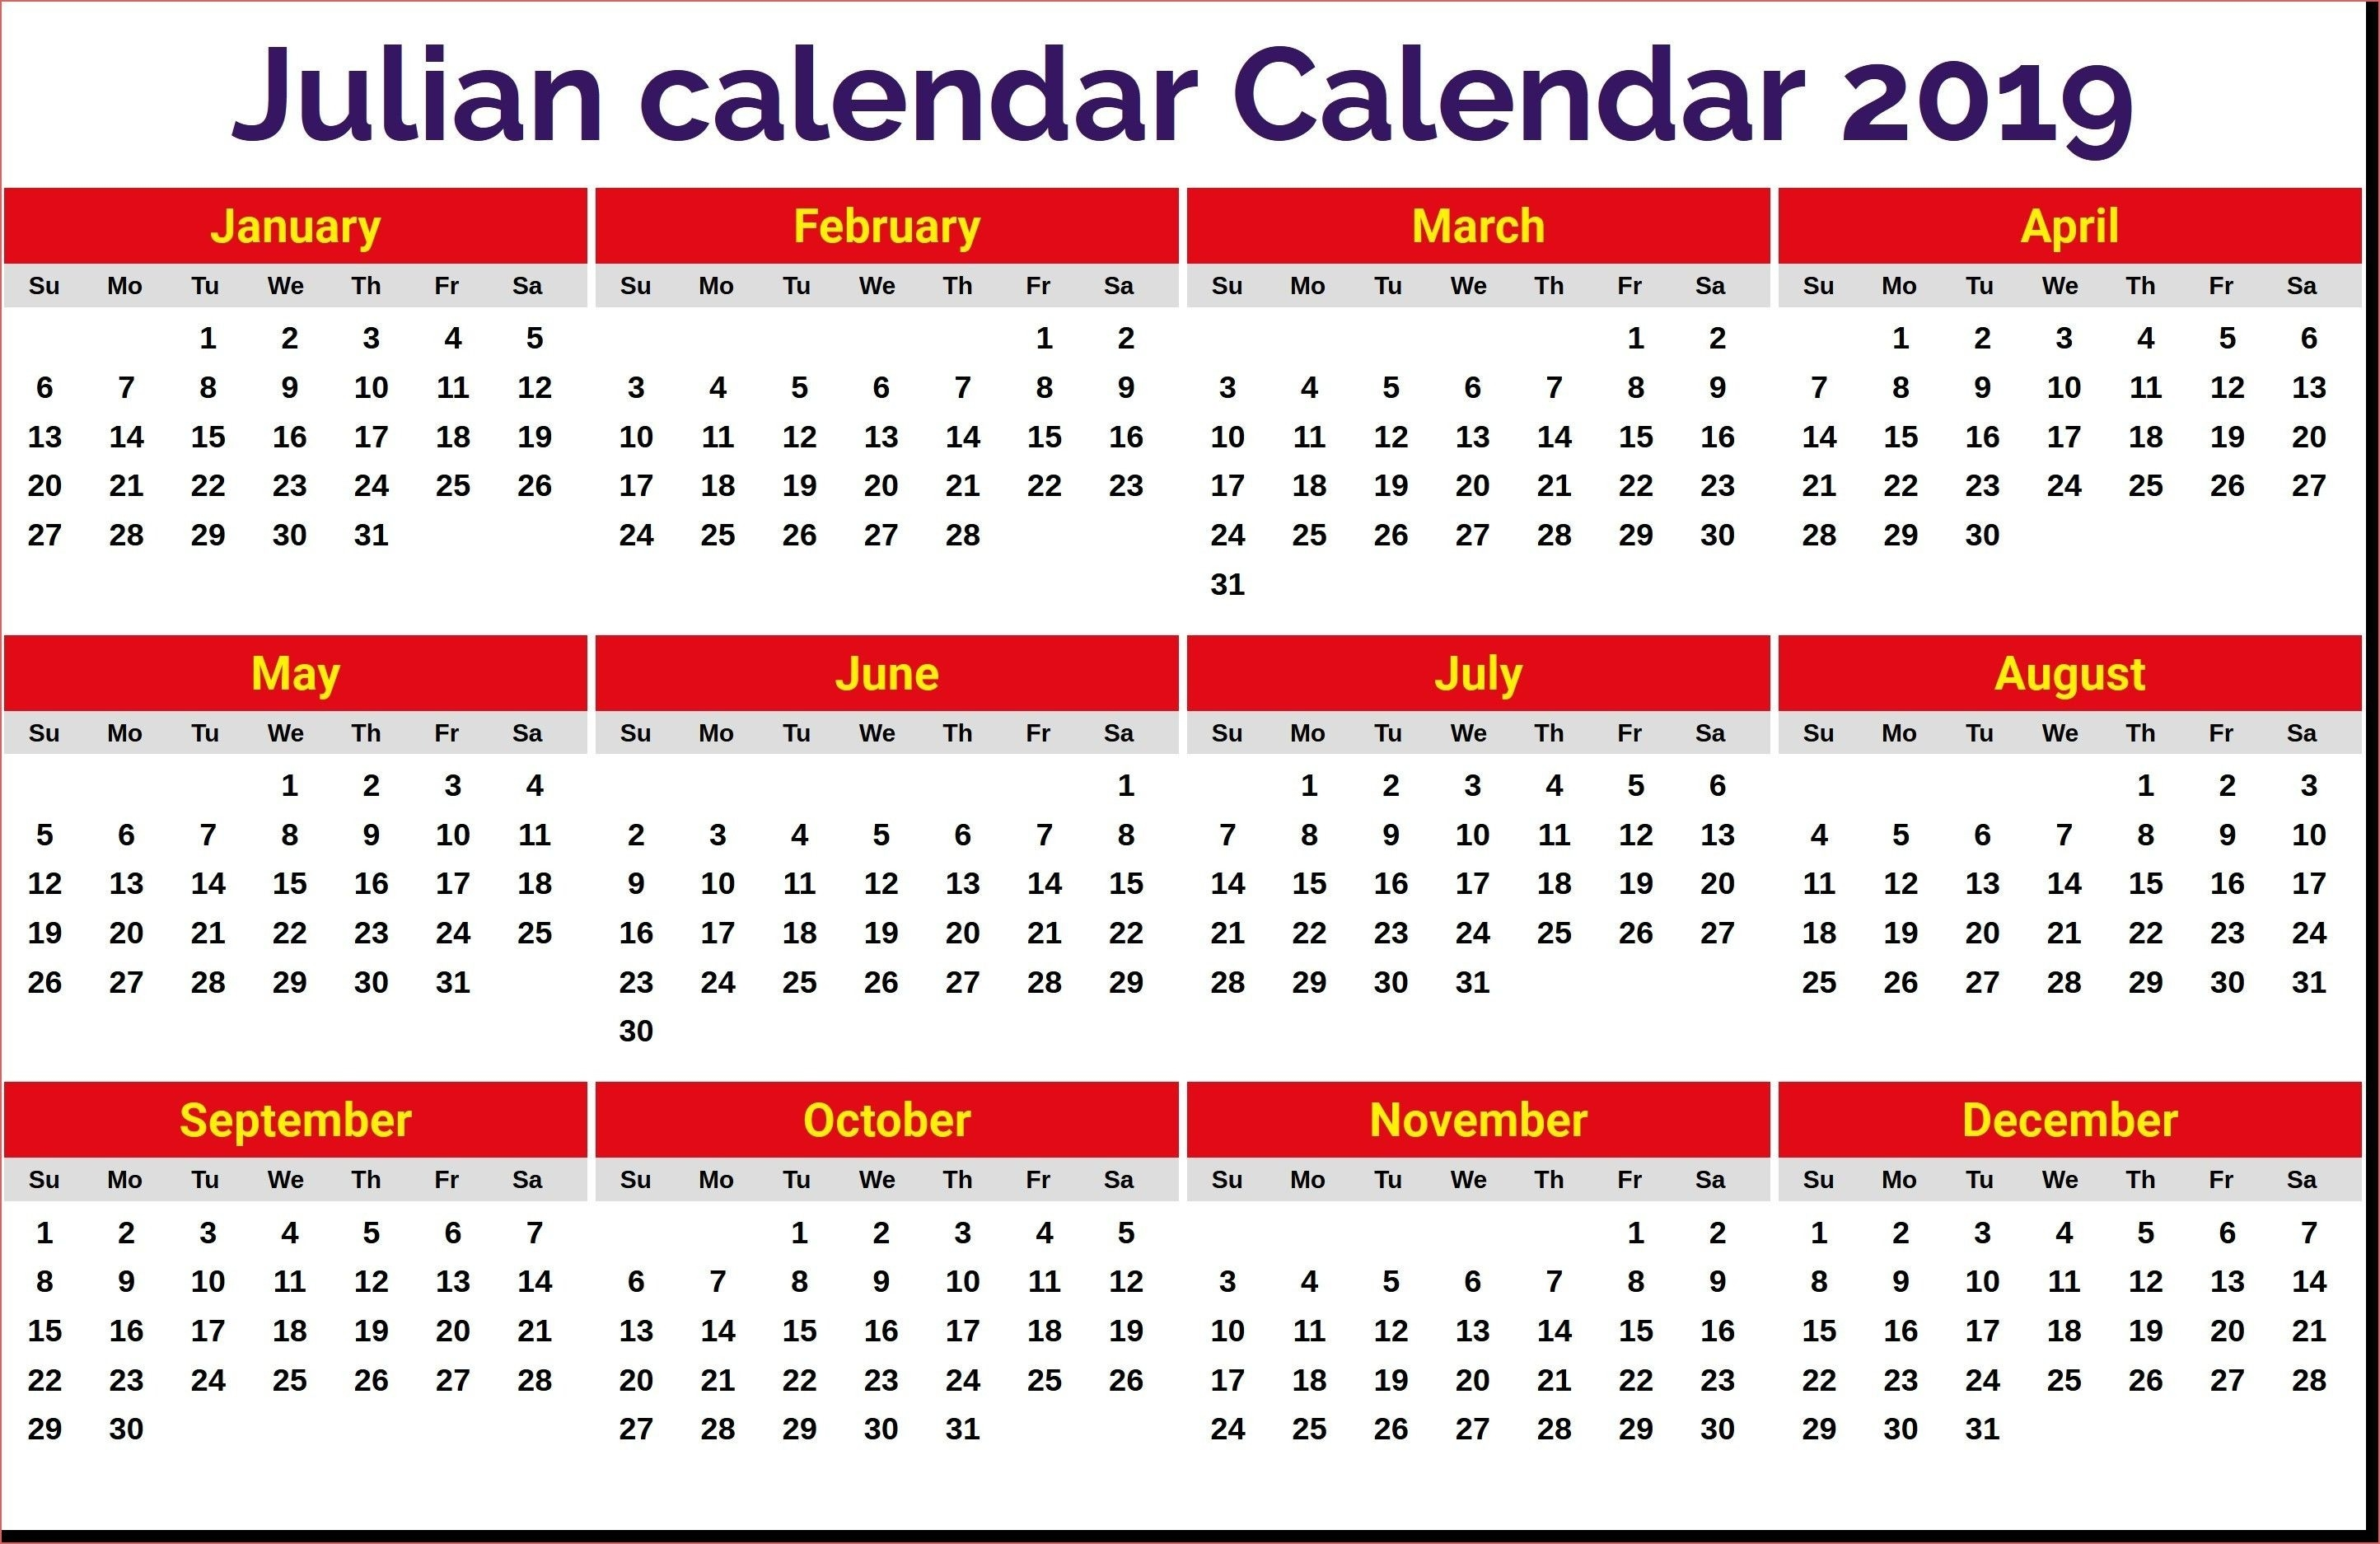 August Calendar 2019 Julian Date | Calendar Format Example  Julian Date For August 24